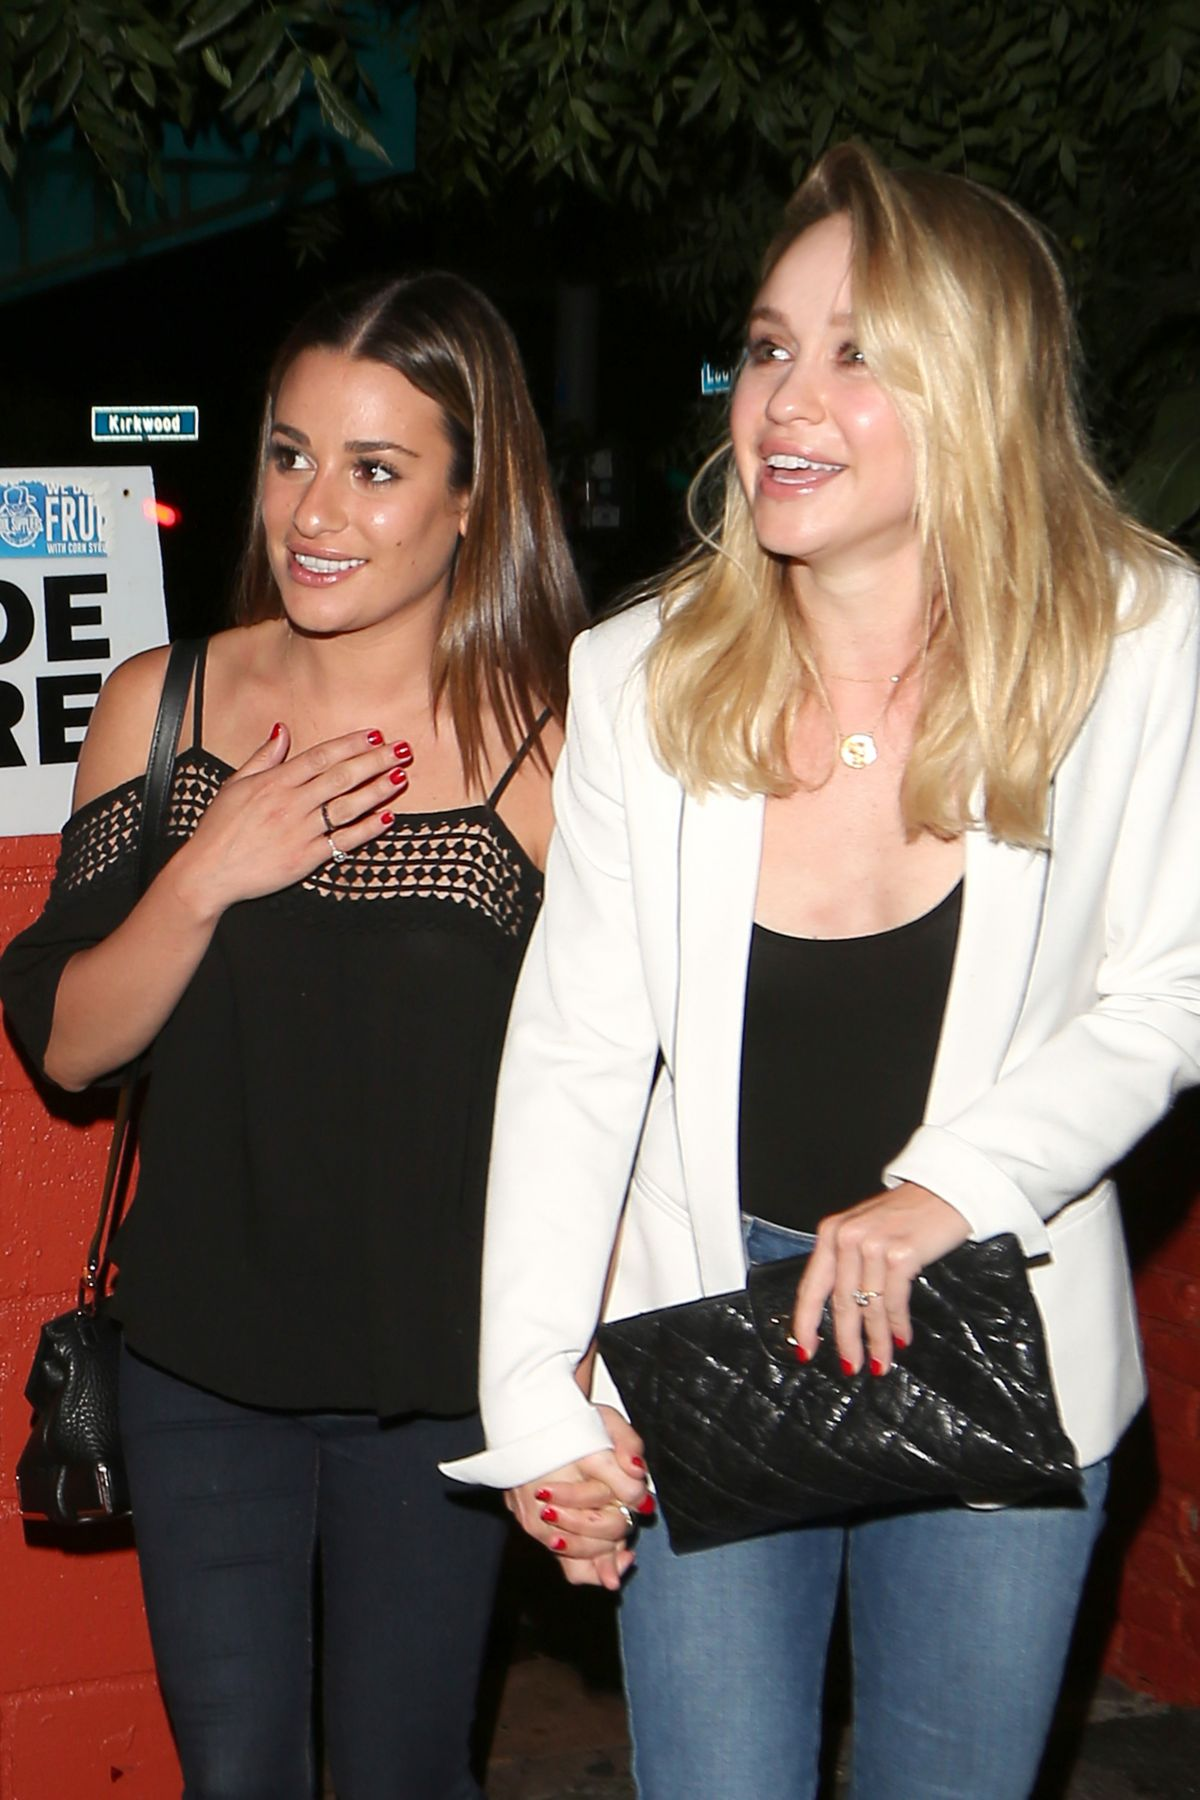 LEA MICHELE and BECCA TOBIN Leaves Pace Restaurant 05/25/2016